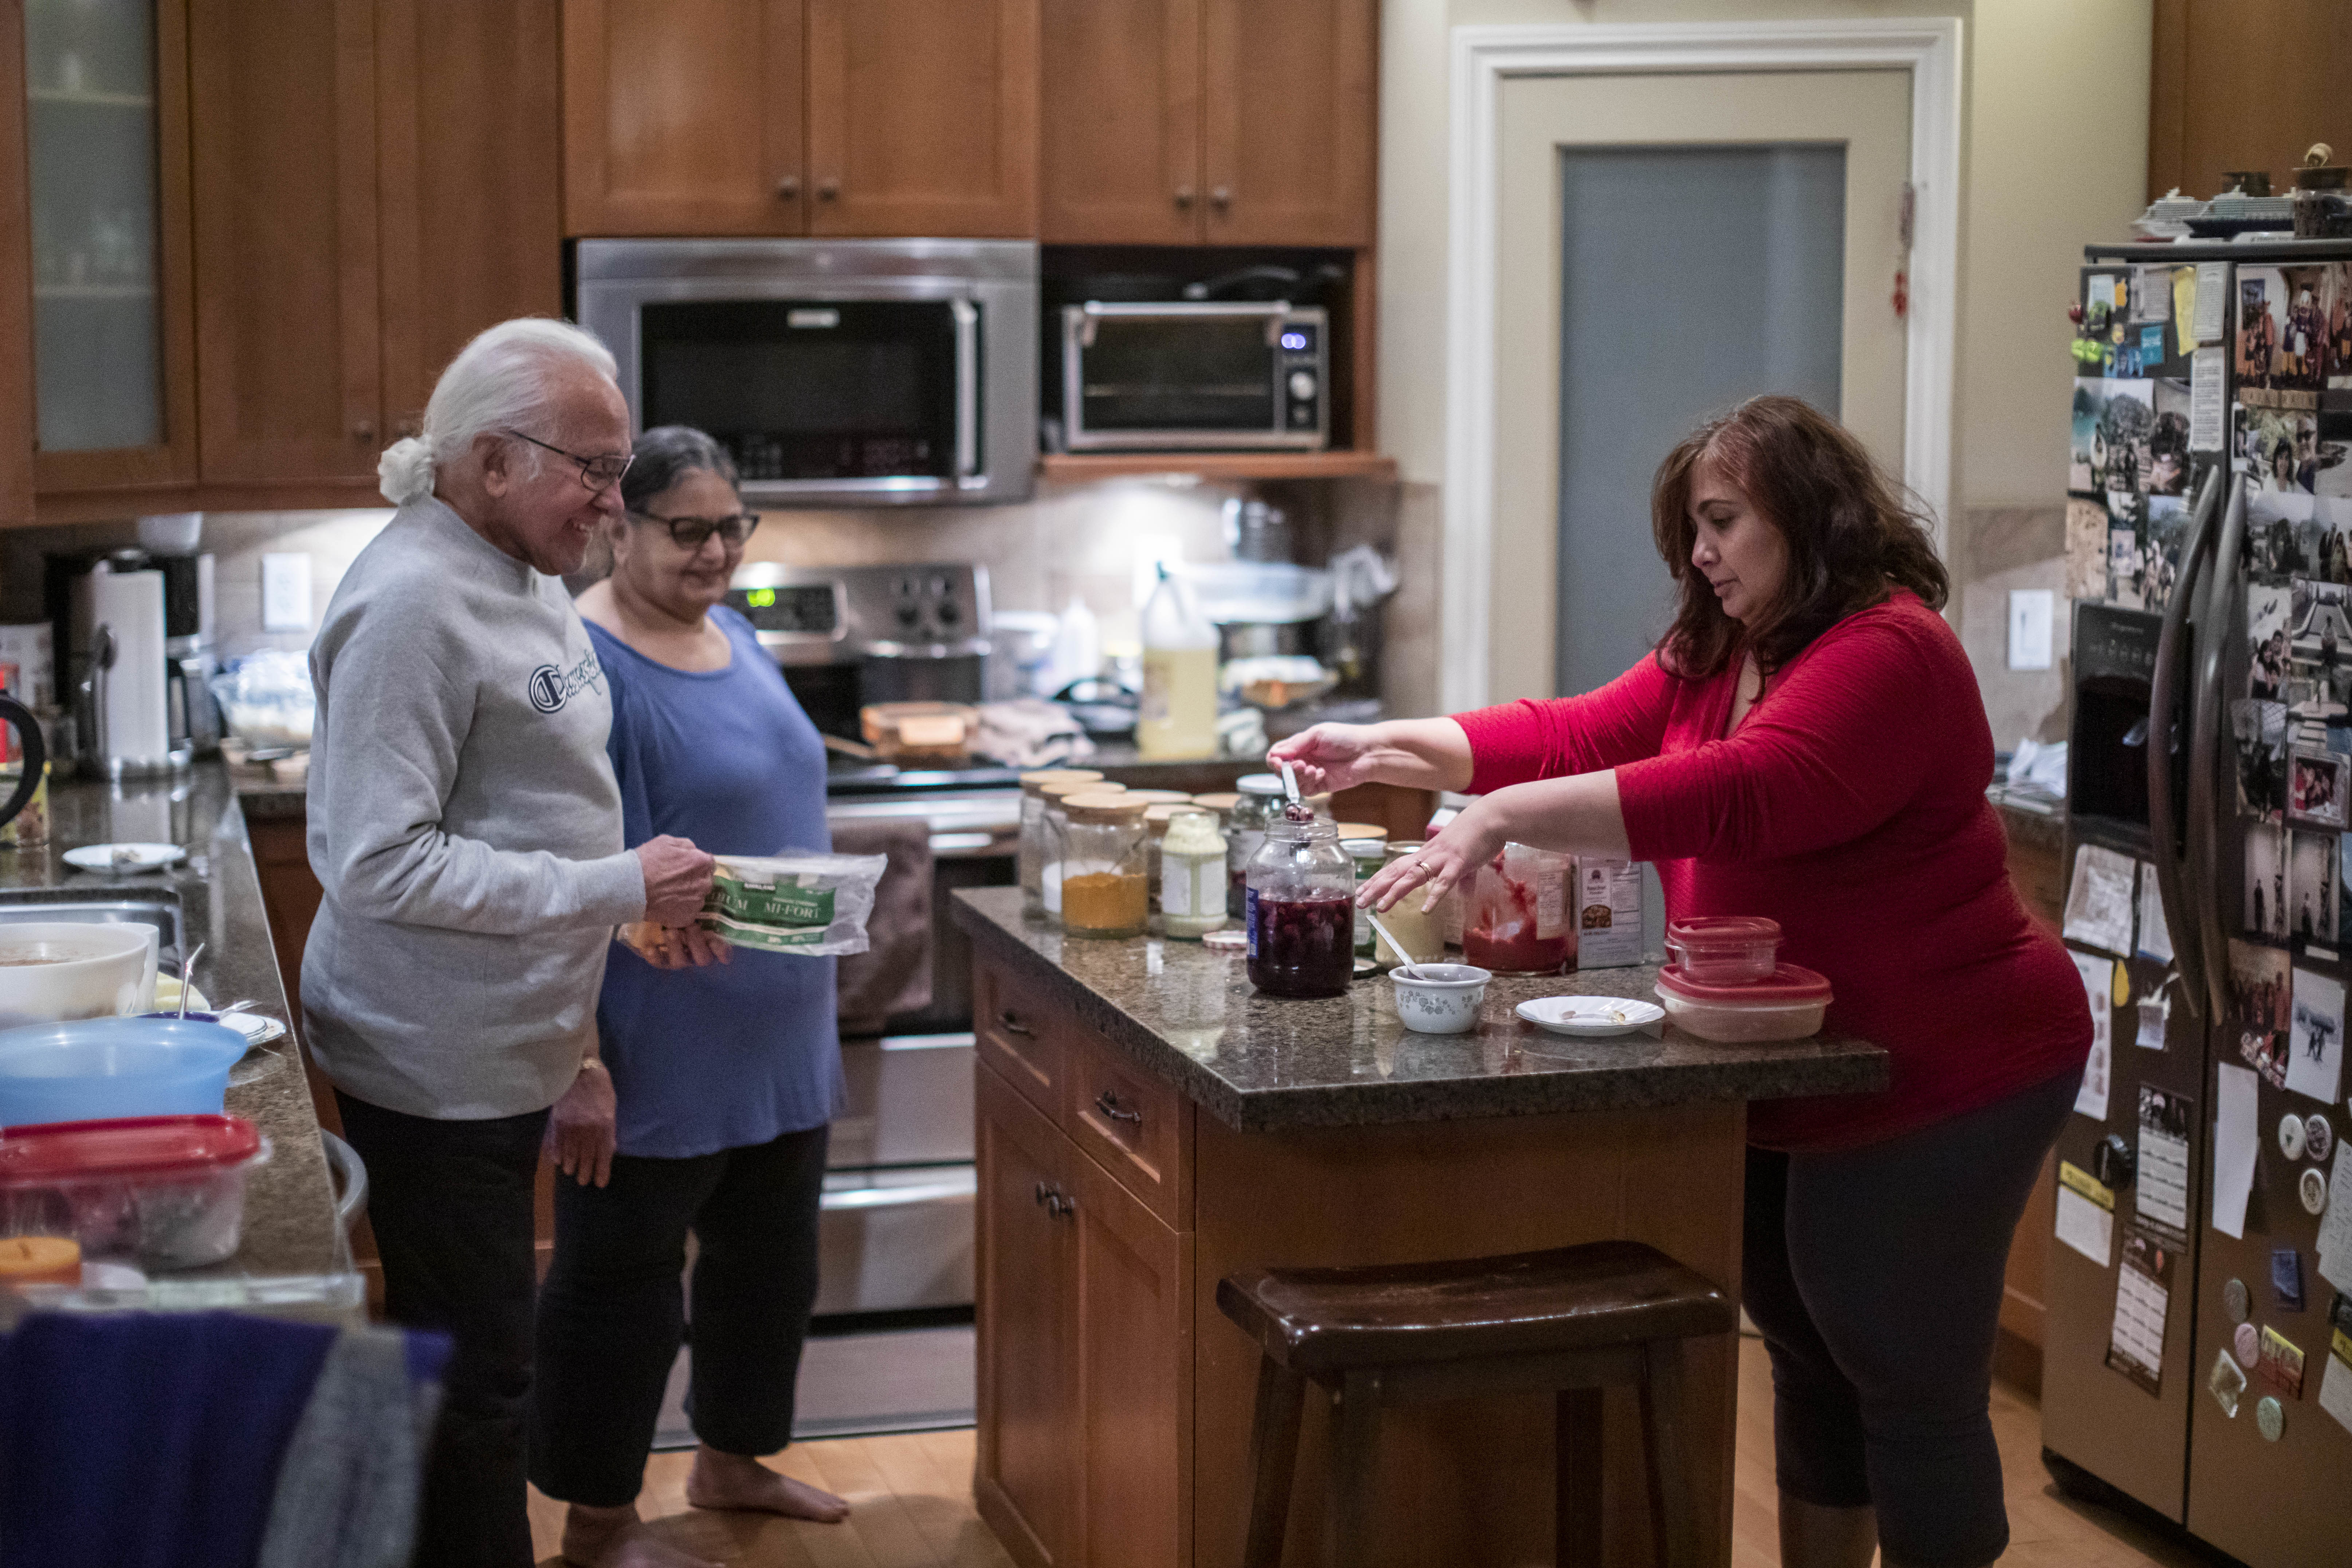 Lakhani's father-in-law and mother-in-law have their own living space in the basement. But the family regularly comes together to cook. (Ben Nelms/CBC)